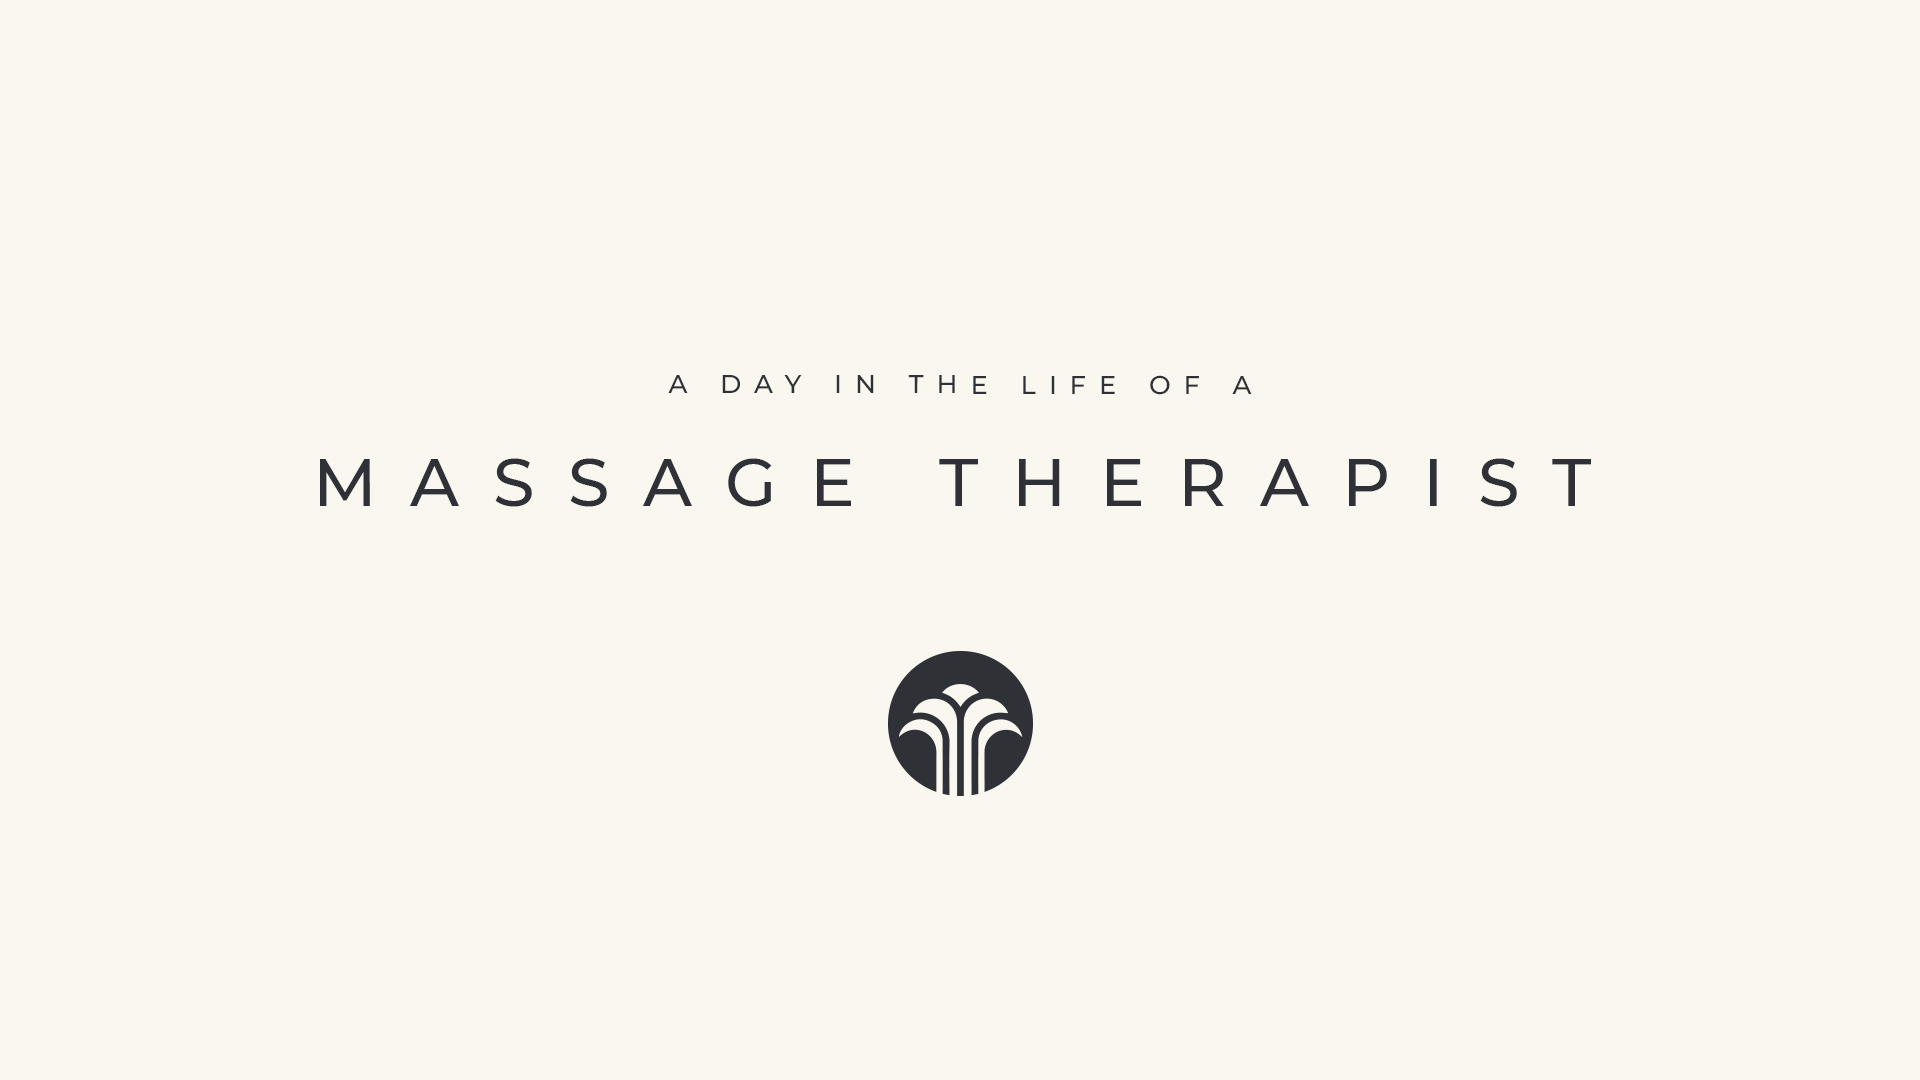 a day in the life of a massage therapist male mobile studio massage therapist nassau bahamas paradise island atlantis baha mar palm cay